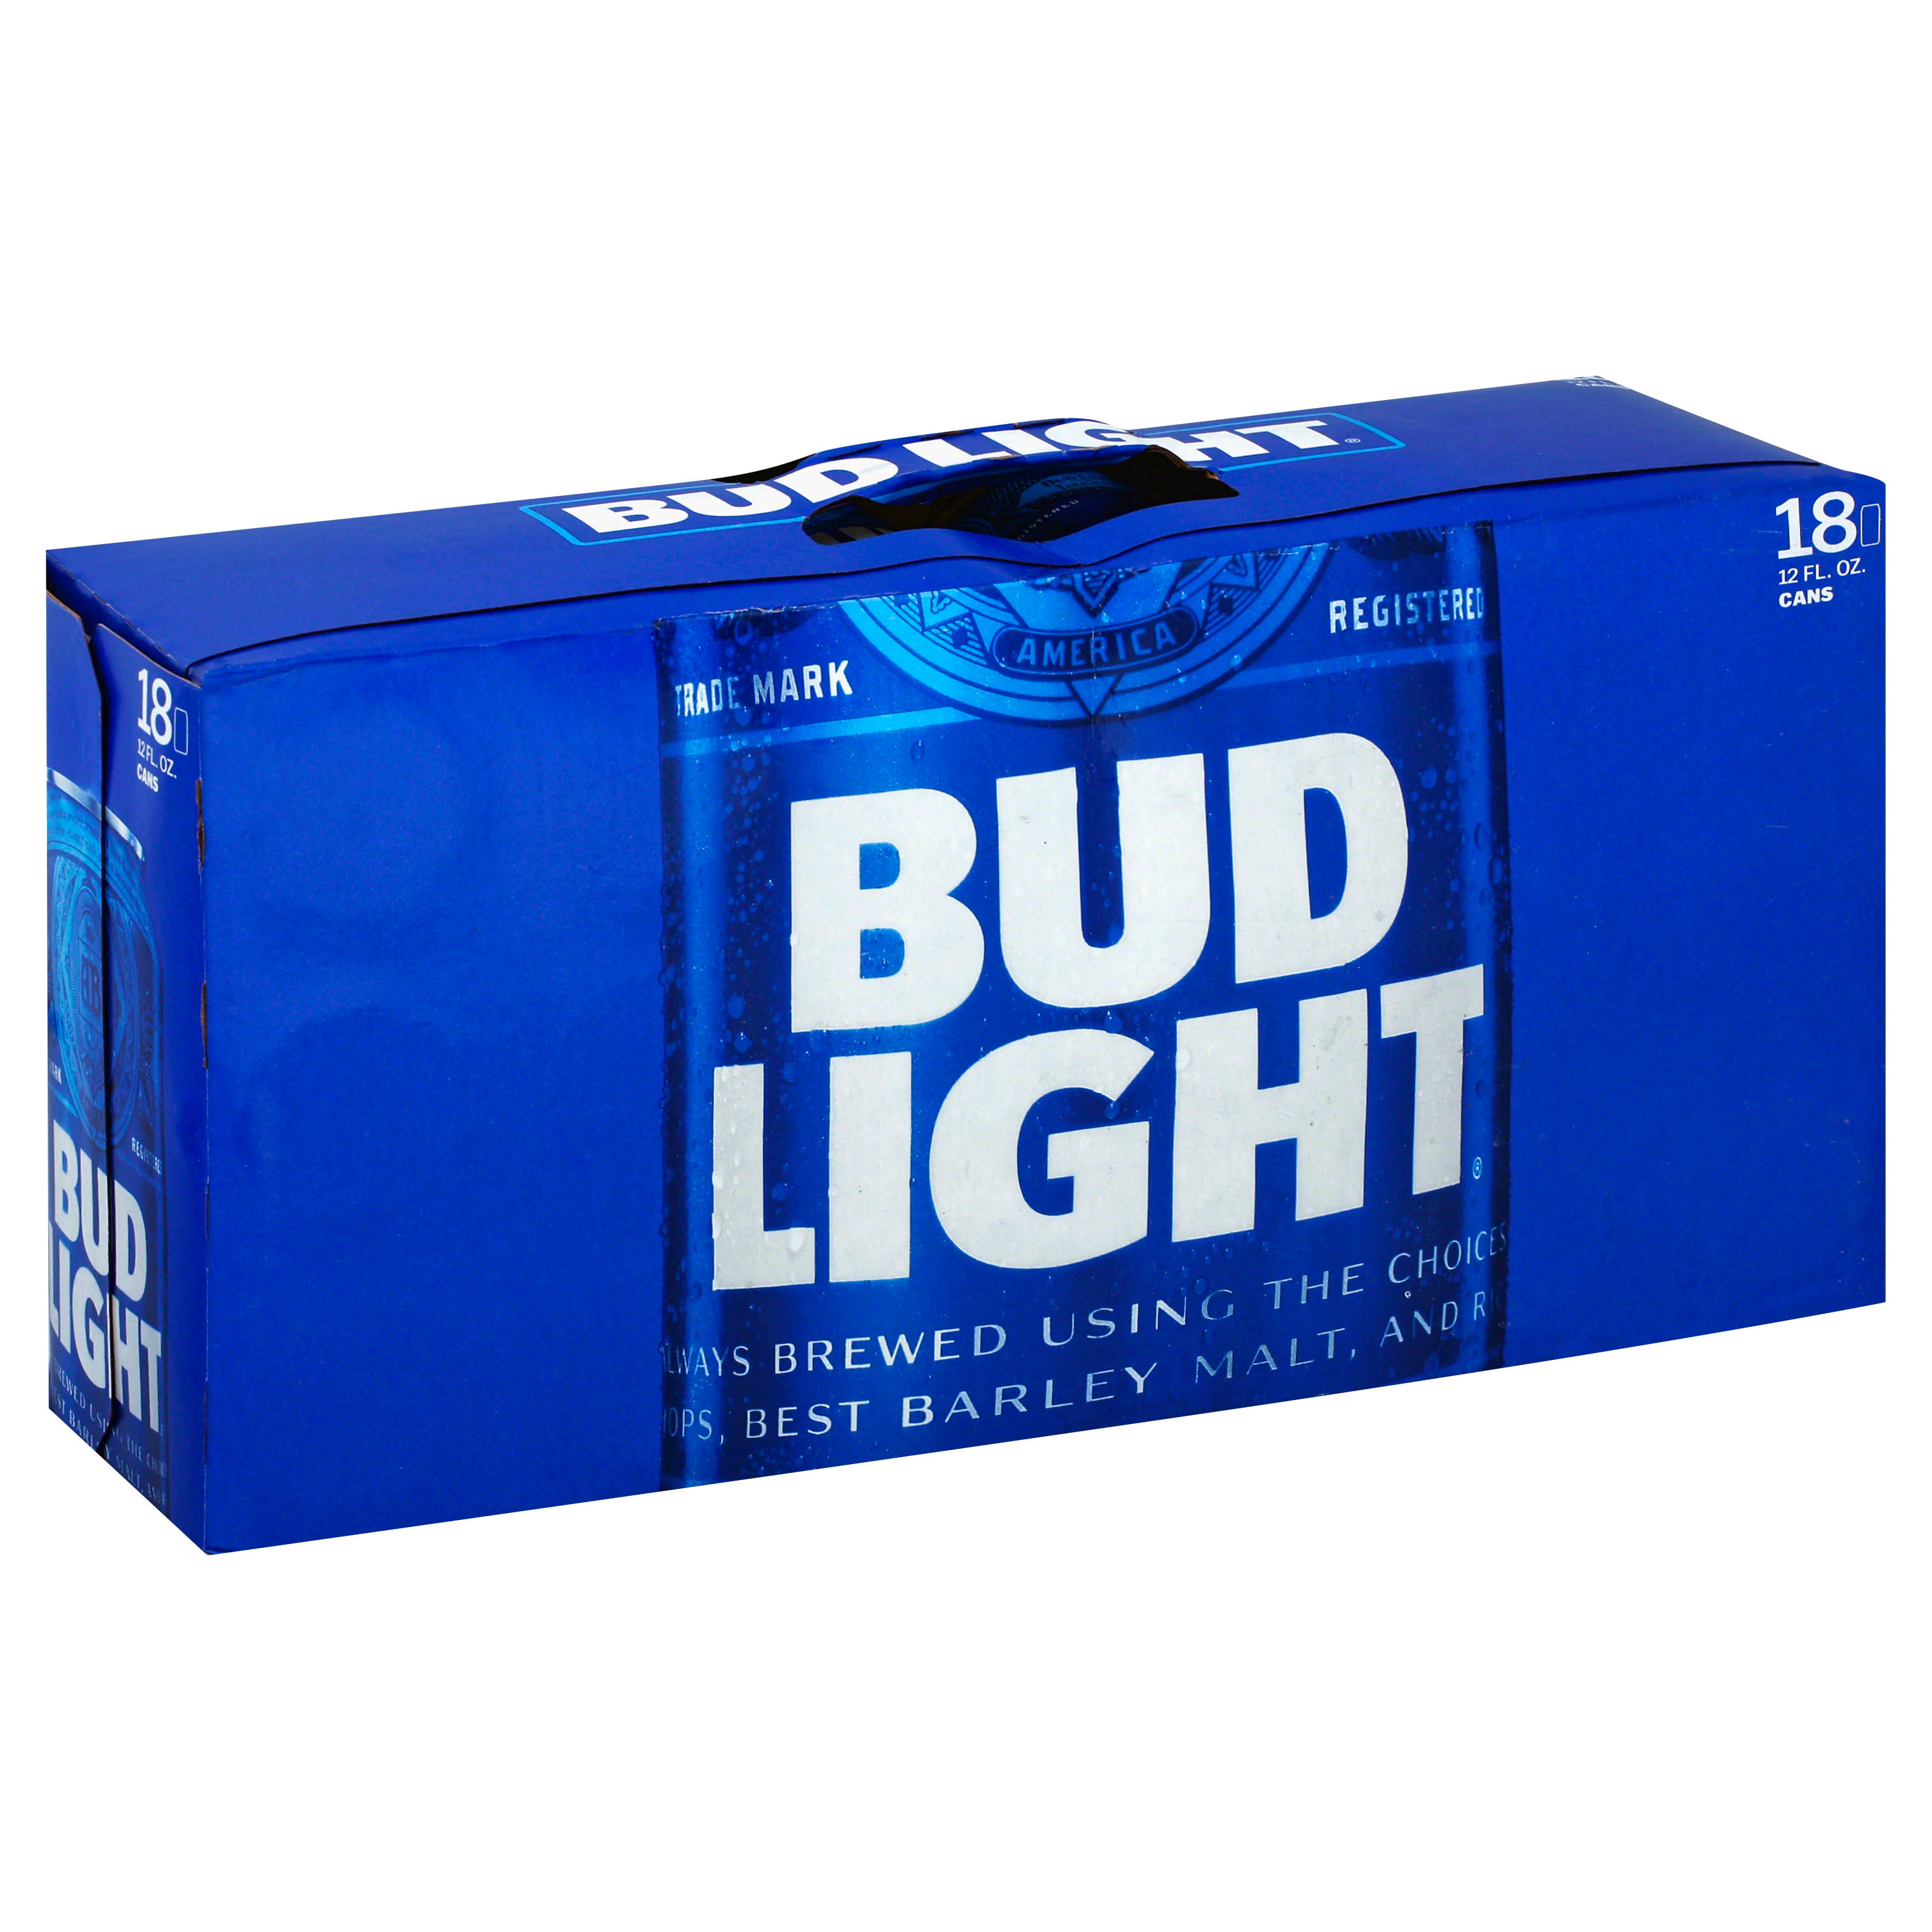 Bud Light Beer - 18 Cans